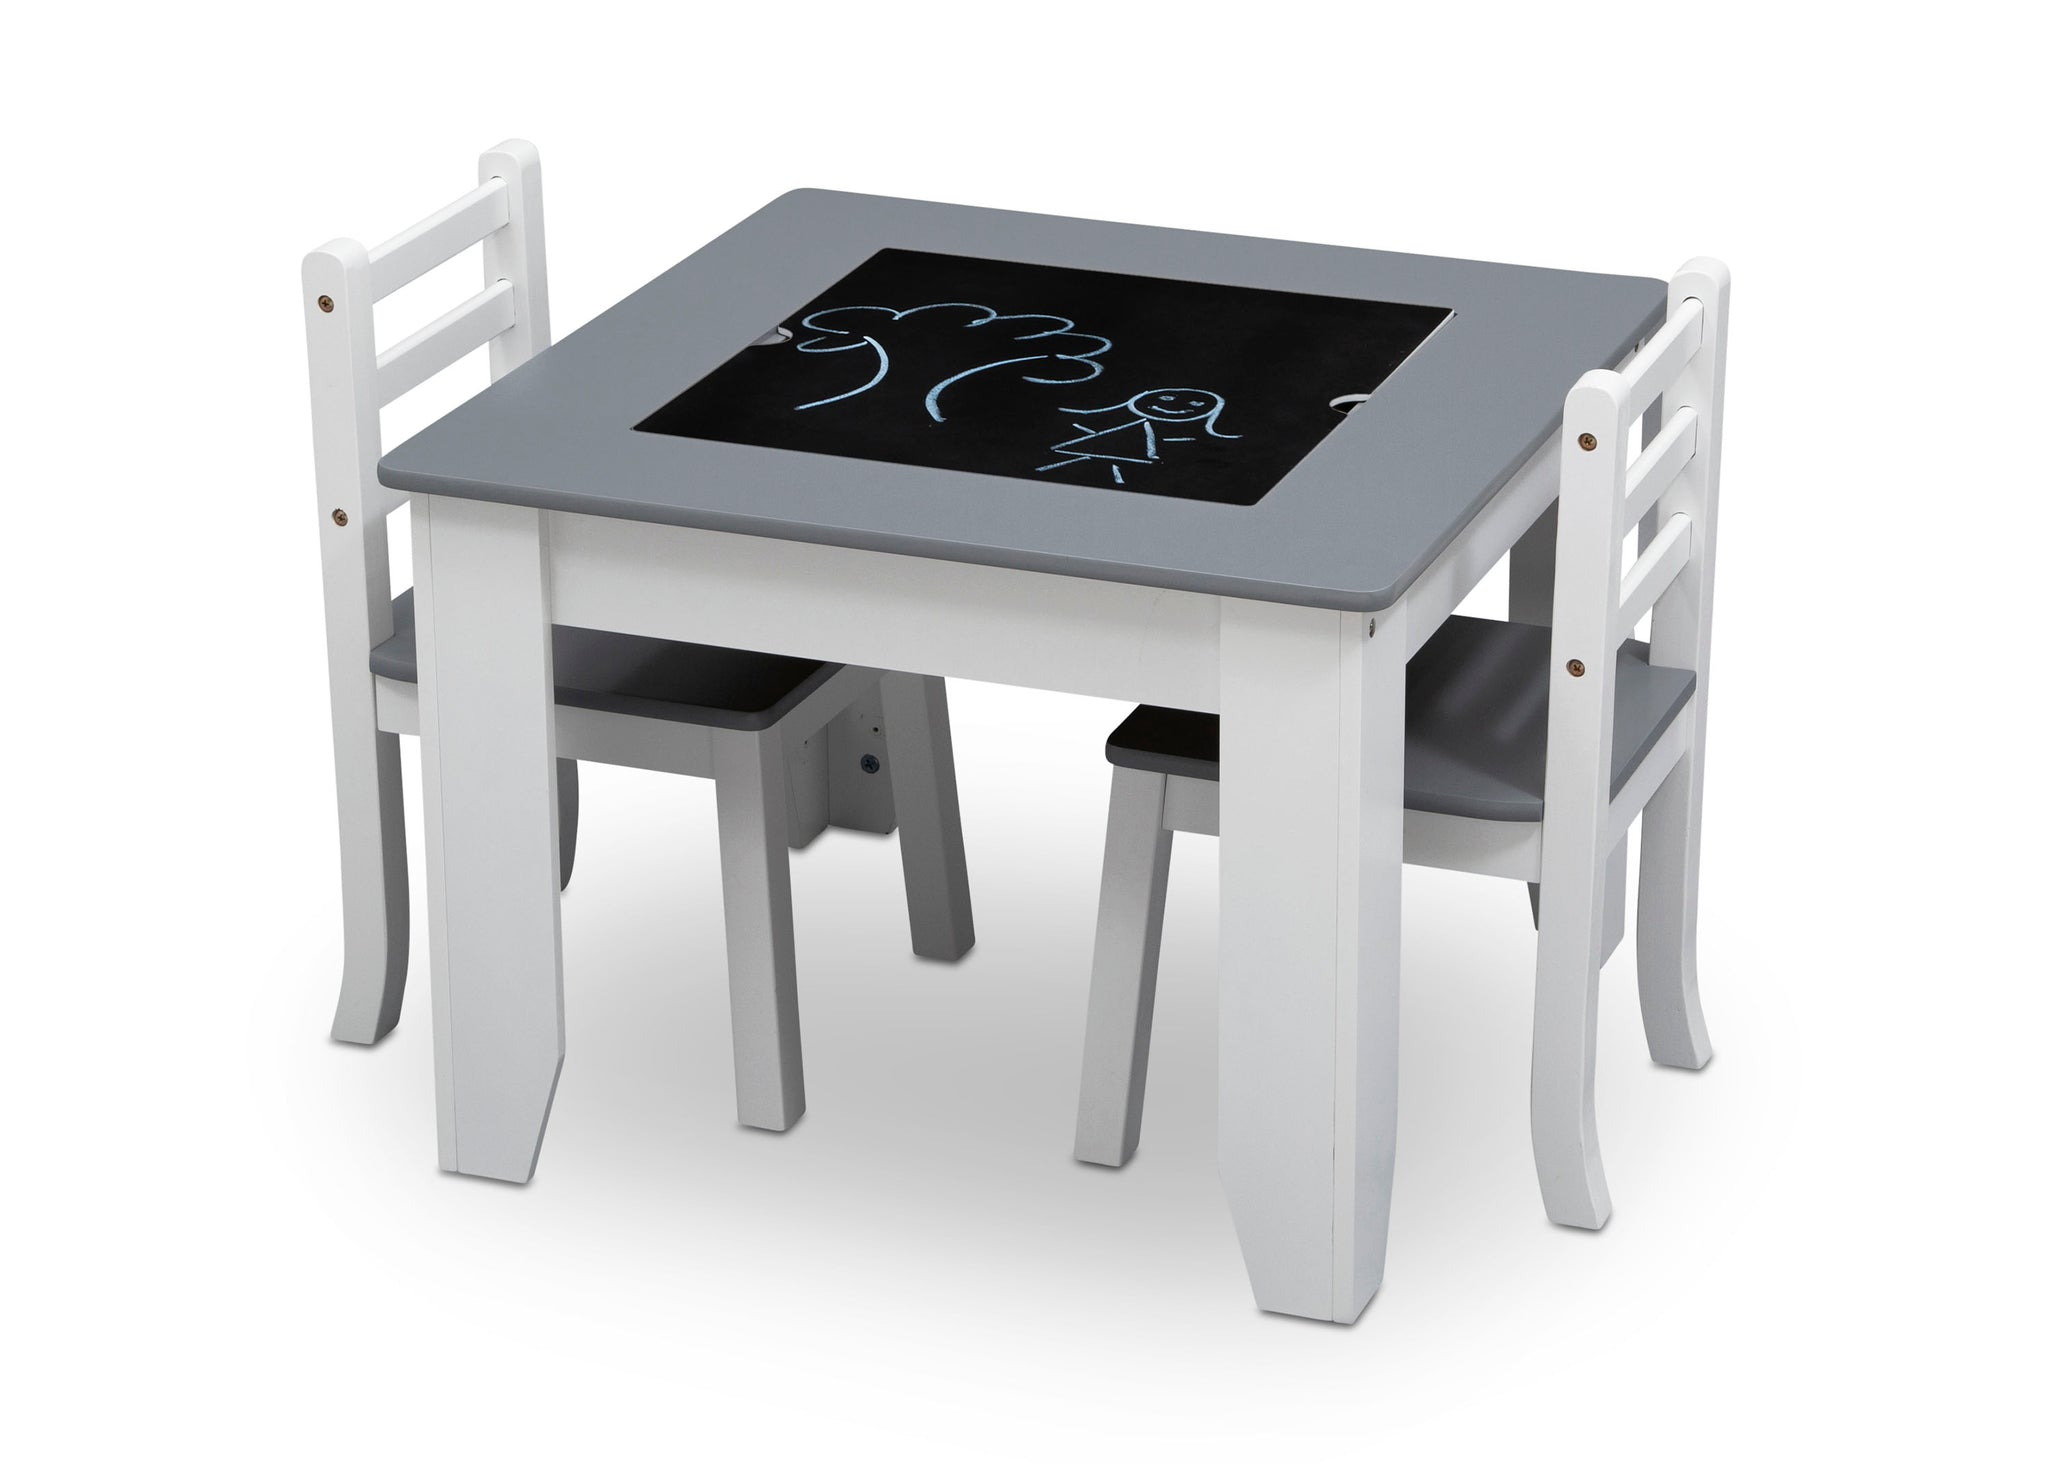 Delta Children Light Grey and White (1176) Chelsea Chair Set with Table Chalkboard with Drawing View a5a